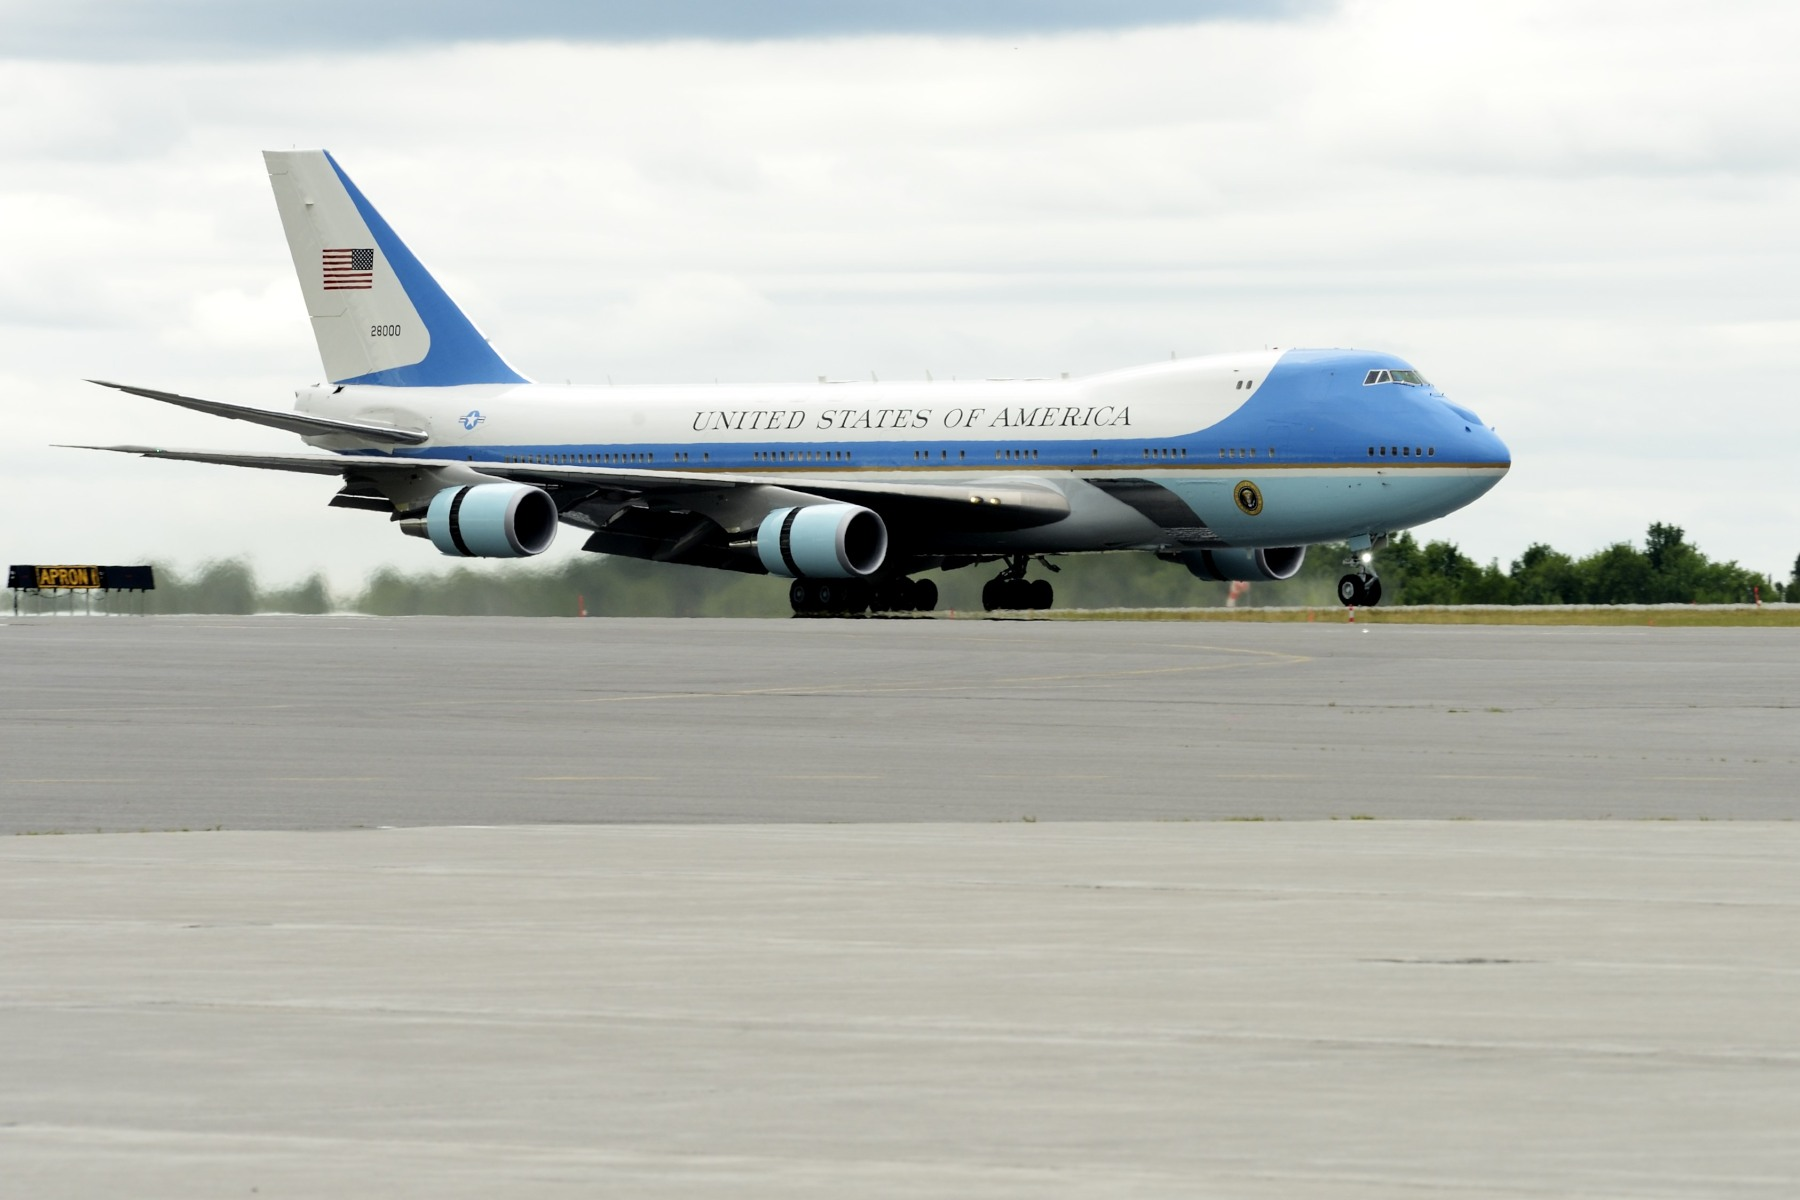 Landing of Air Force 1, the President of the United States' aircraft, at Ottawa International Airport.